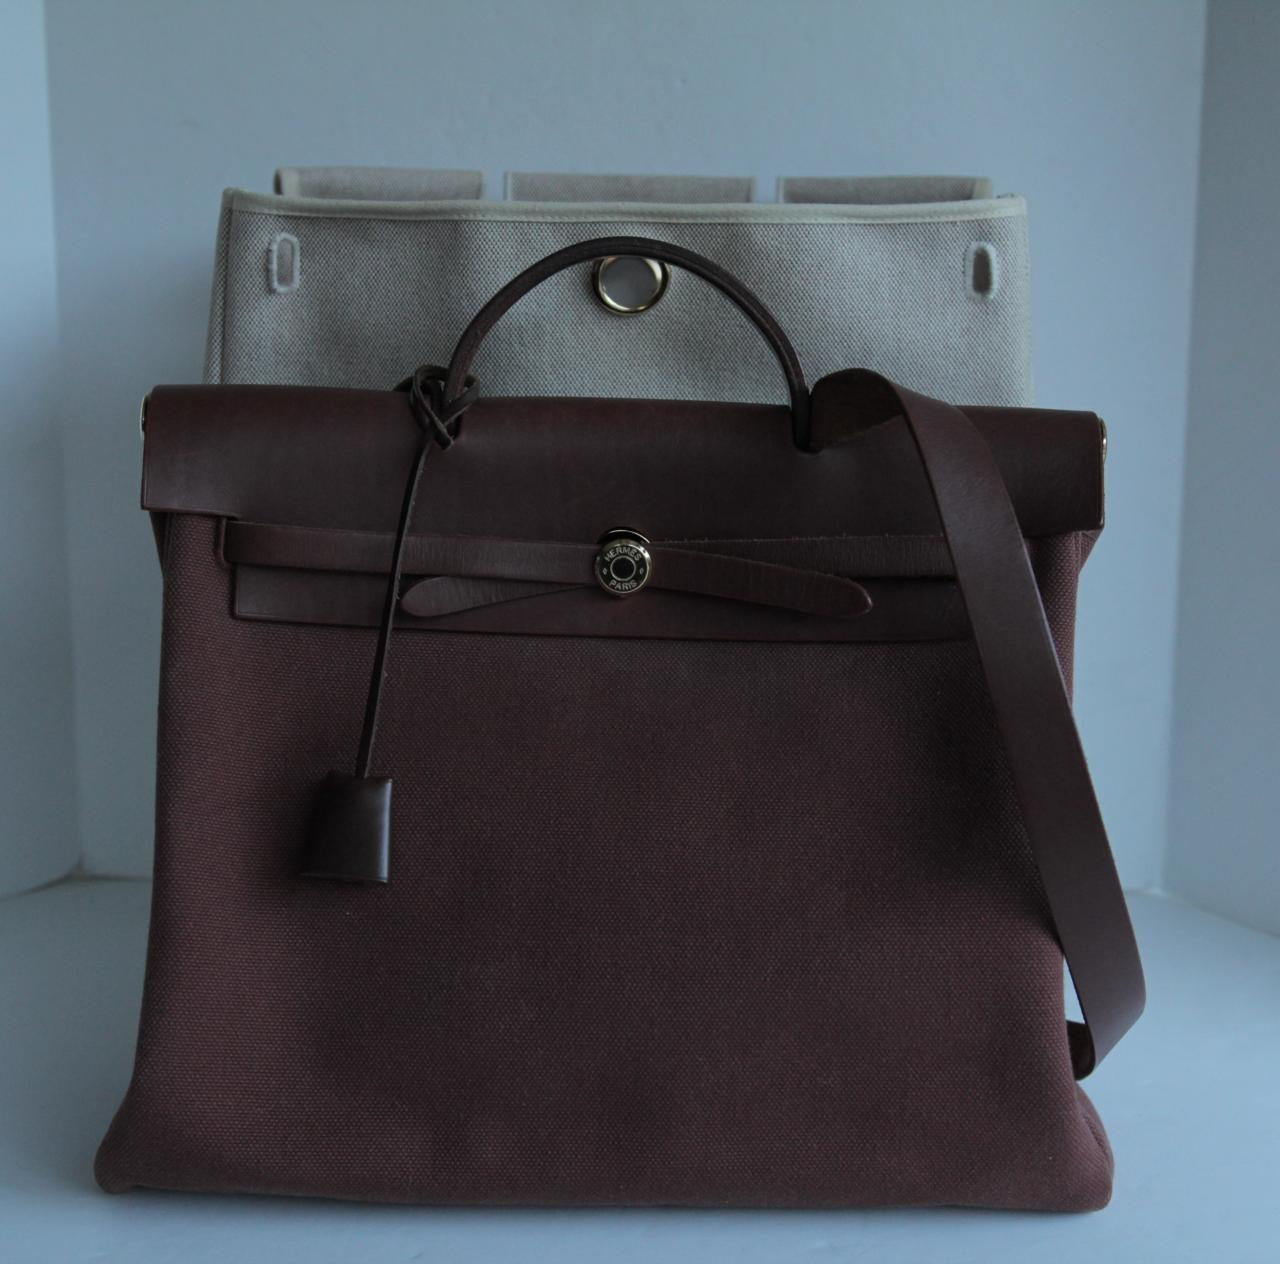 inexpensive clutch purses - authentic-hermes-herbag-mm-size-men-s-bag-with-replacement-bag-3.jpg